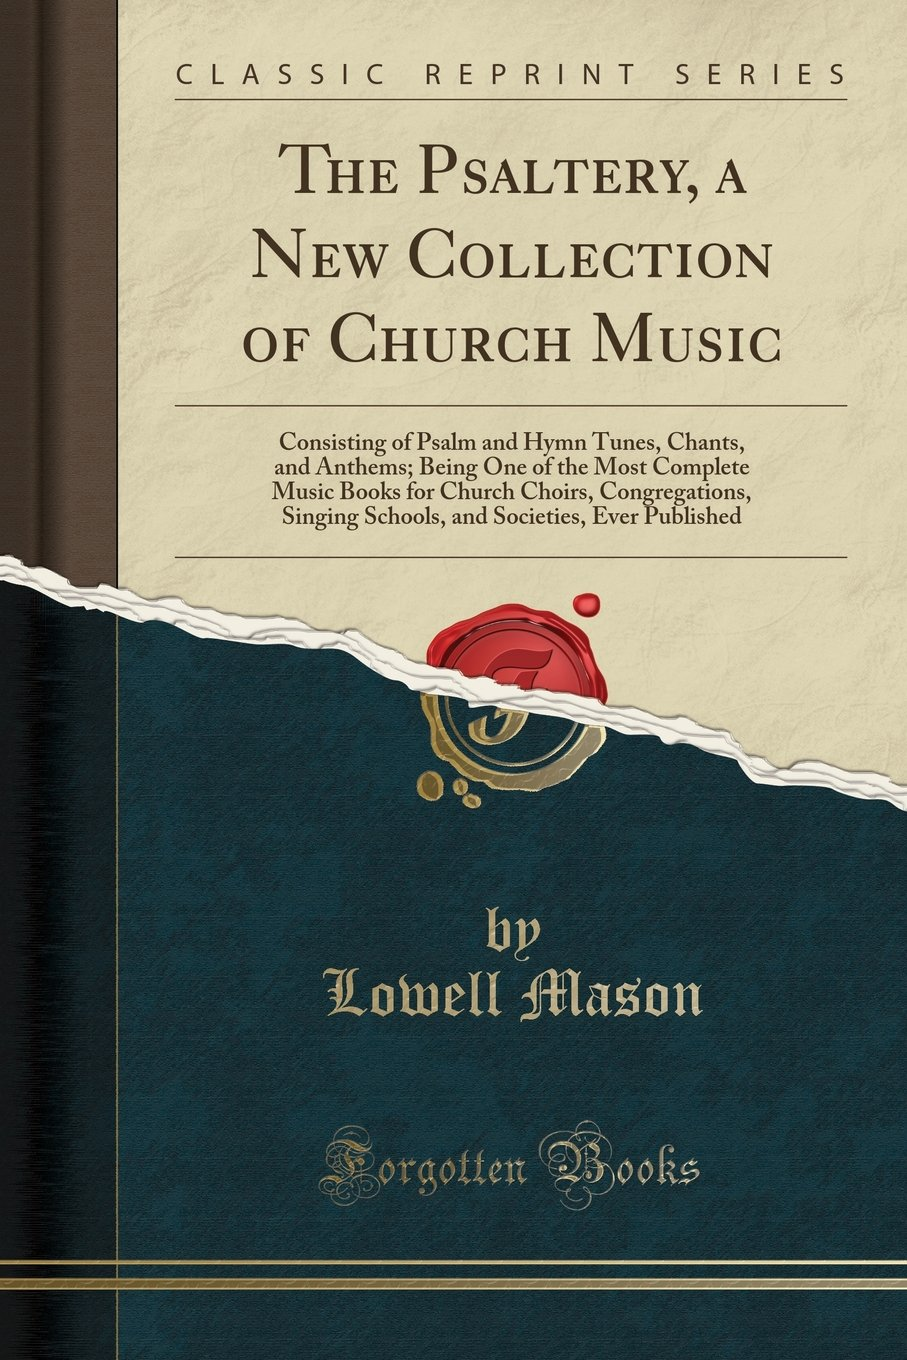 The Psaltery, a New Collection of Church Music: Consisting